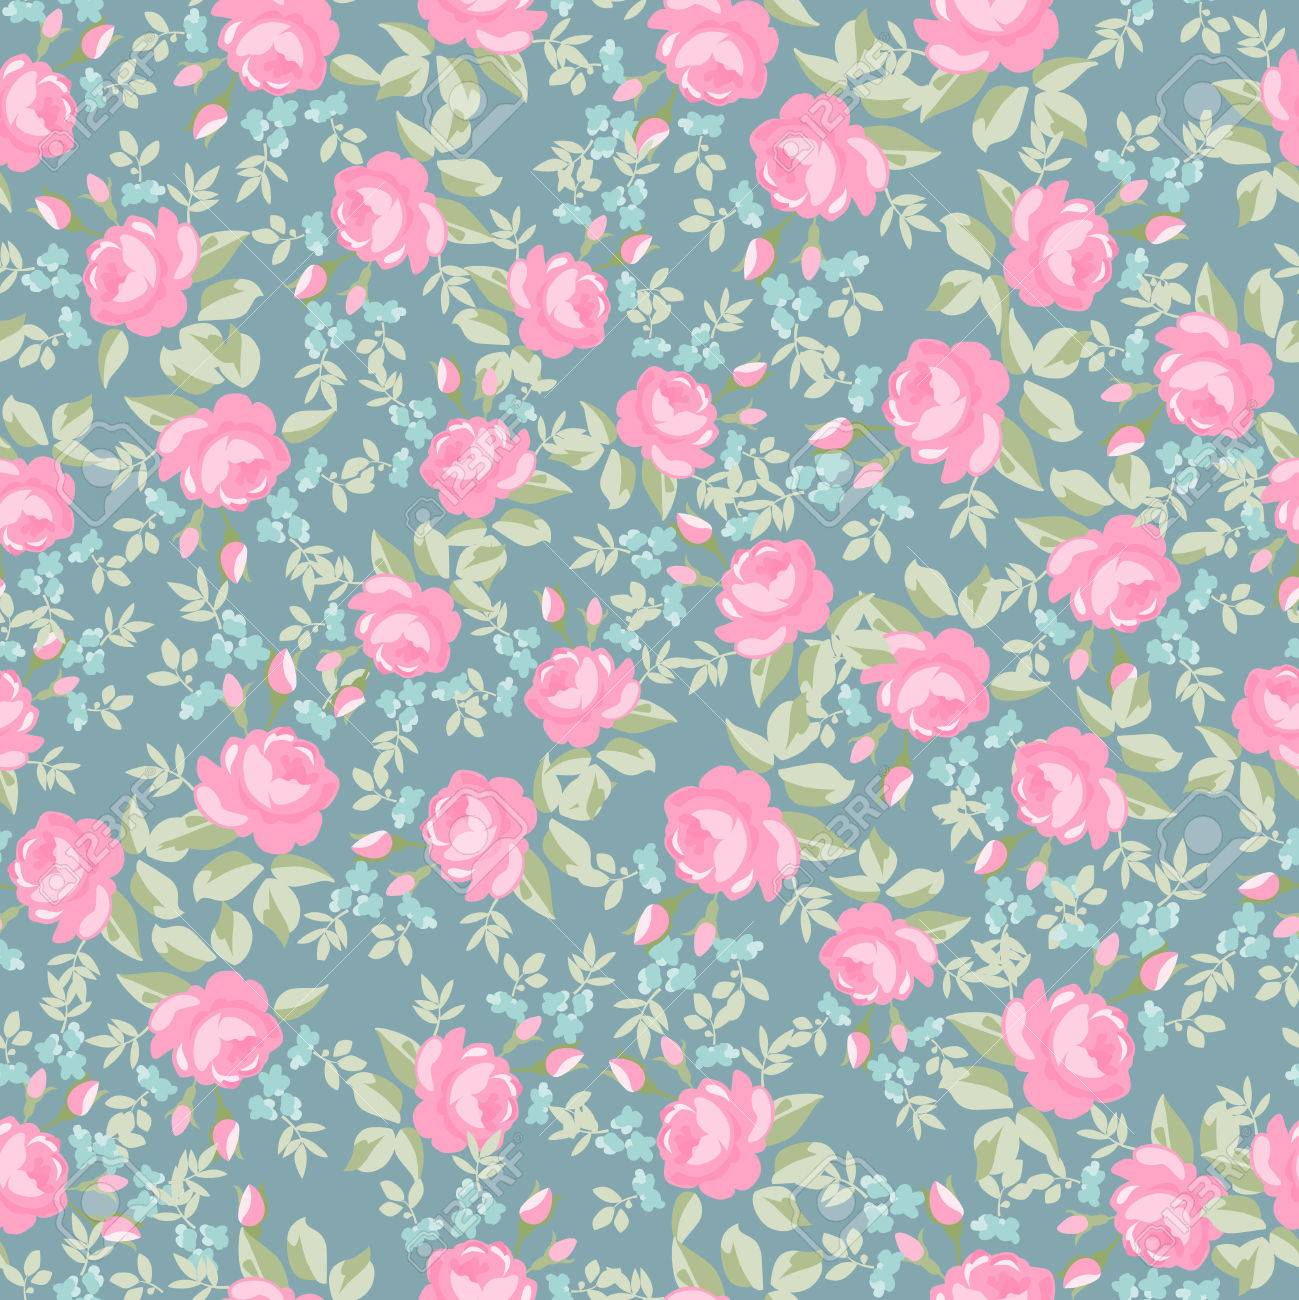 Seamless wallpaper pattern with pastel roses, vector illustration Stock Vector - 50911721